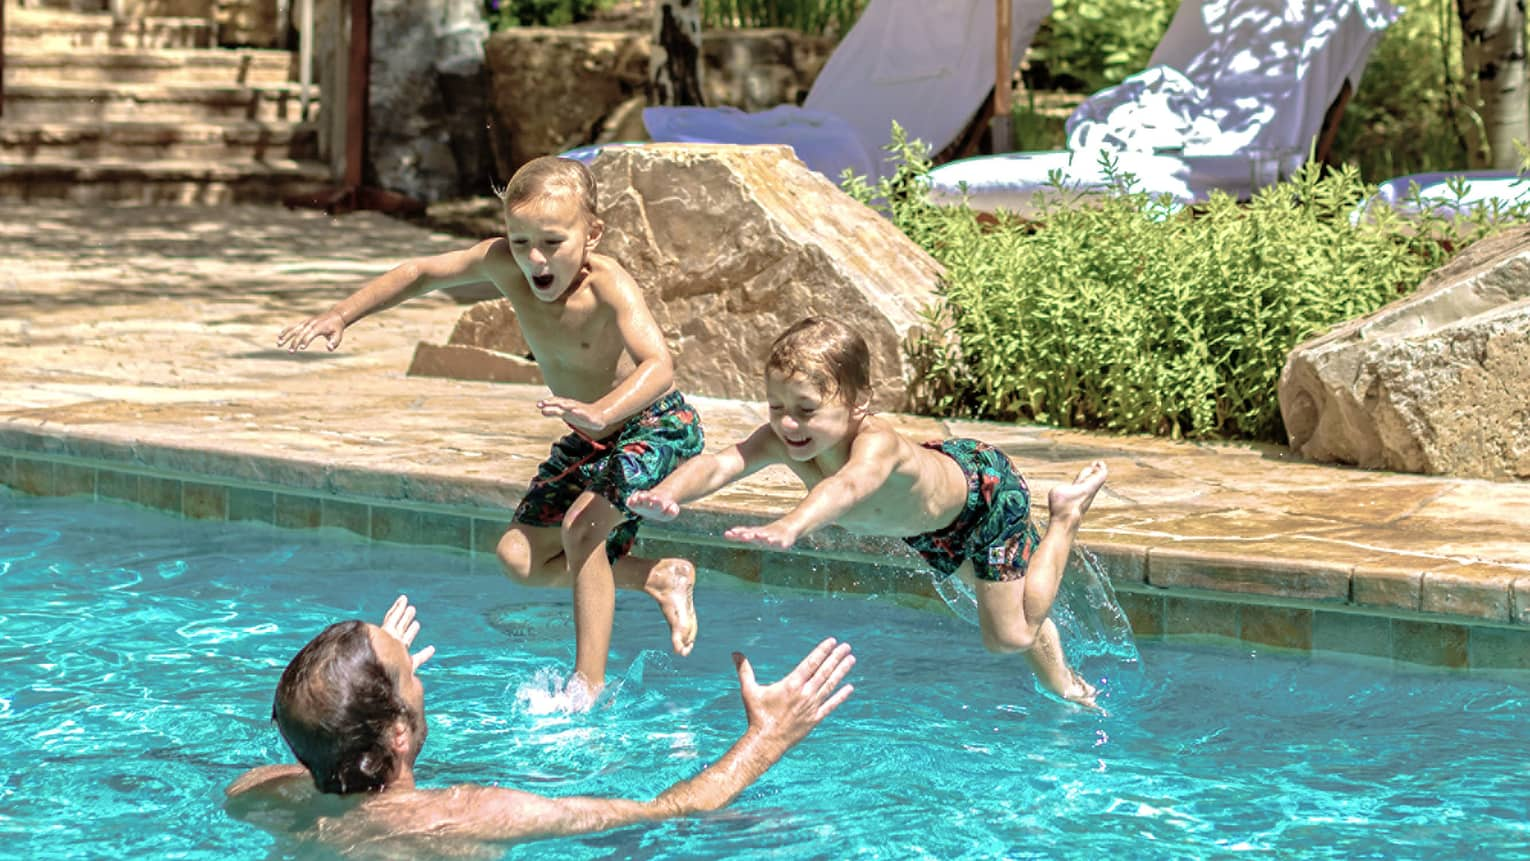 Two young boys jump into their father's outstretched arms in an outdoor pool